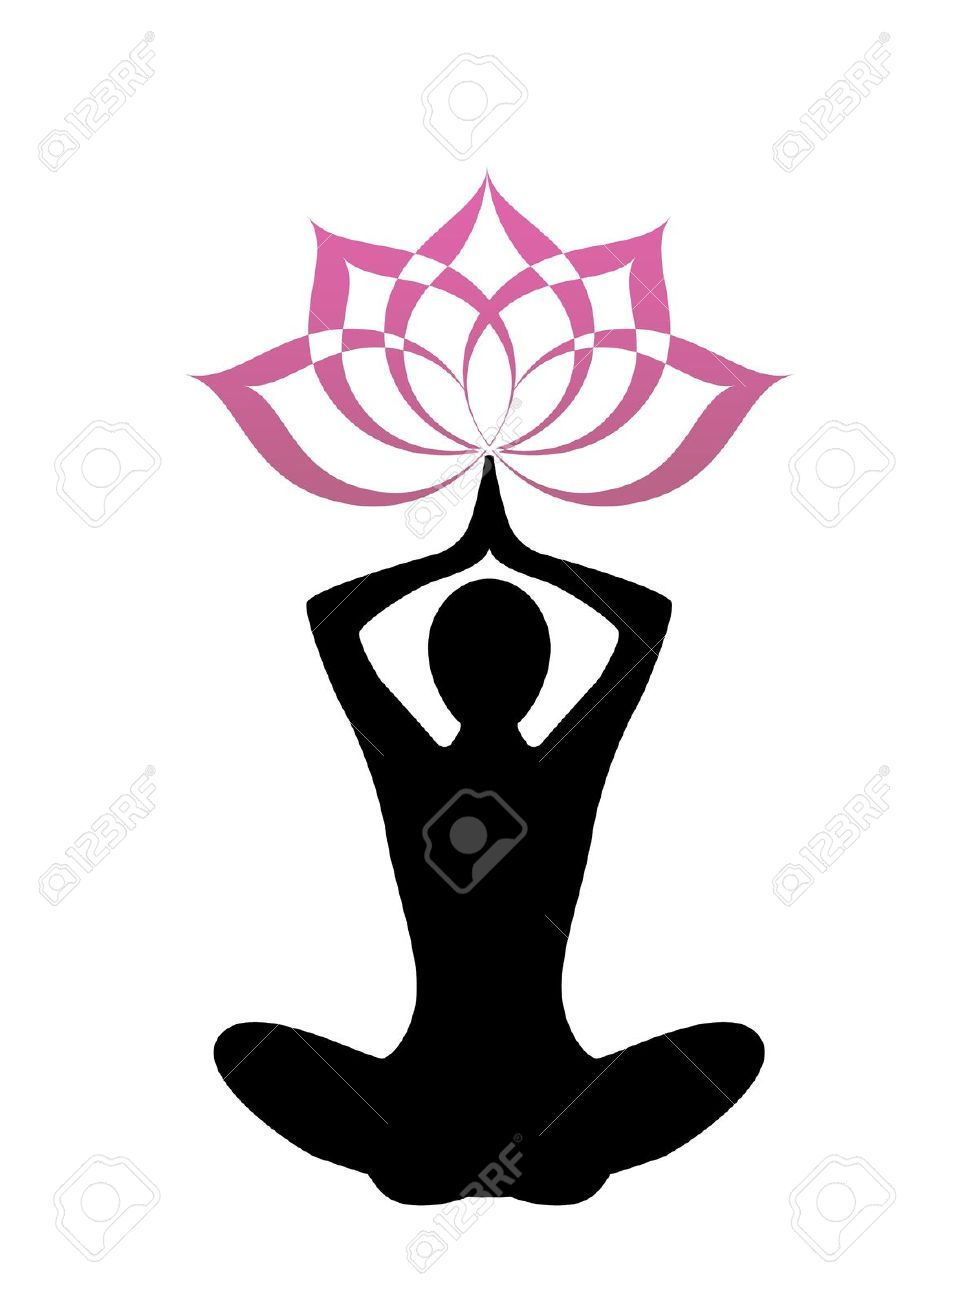 woman meditation pose hands above head outline.